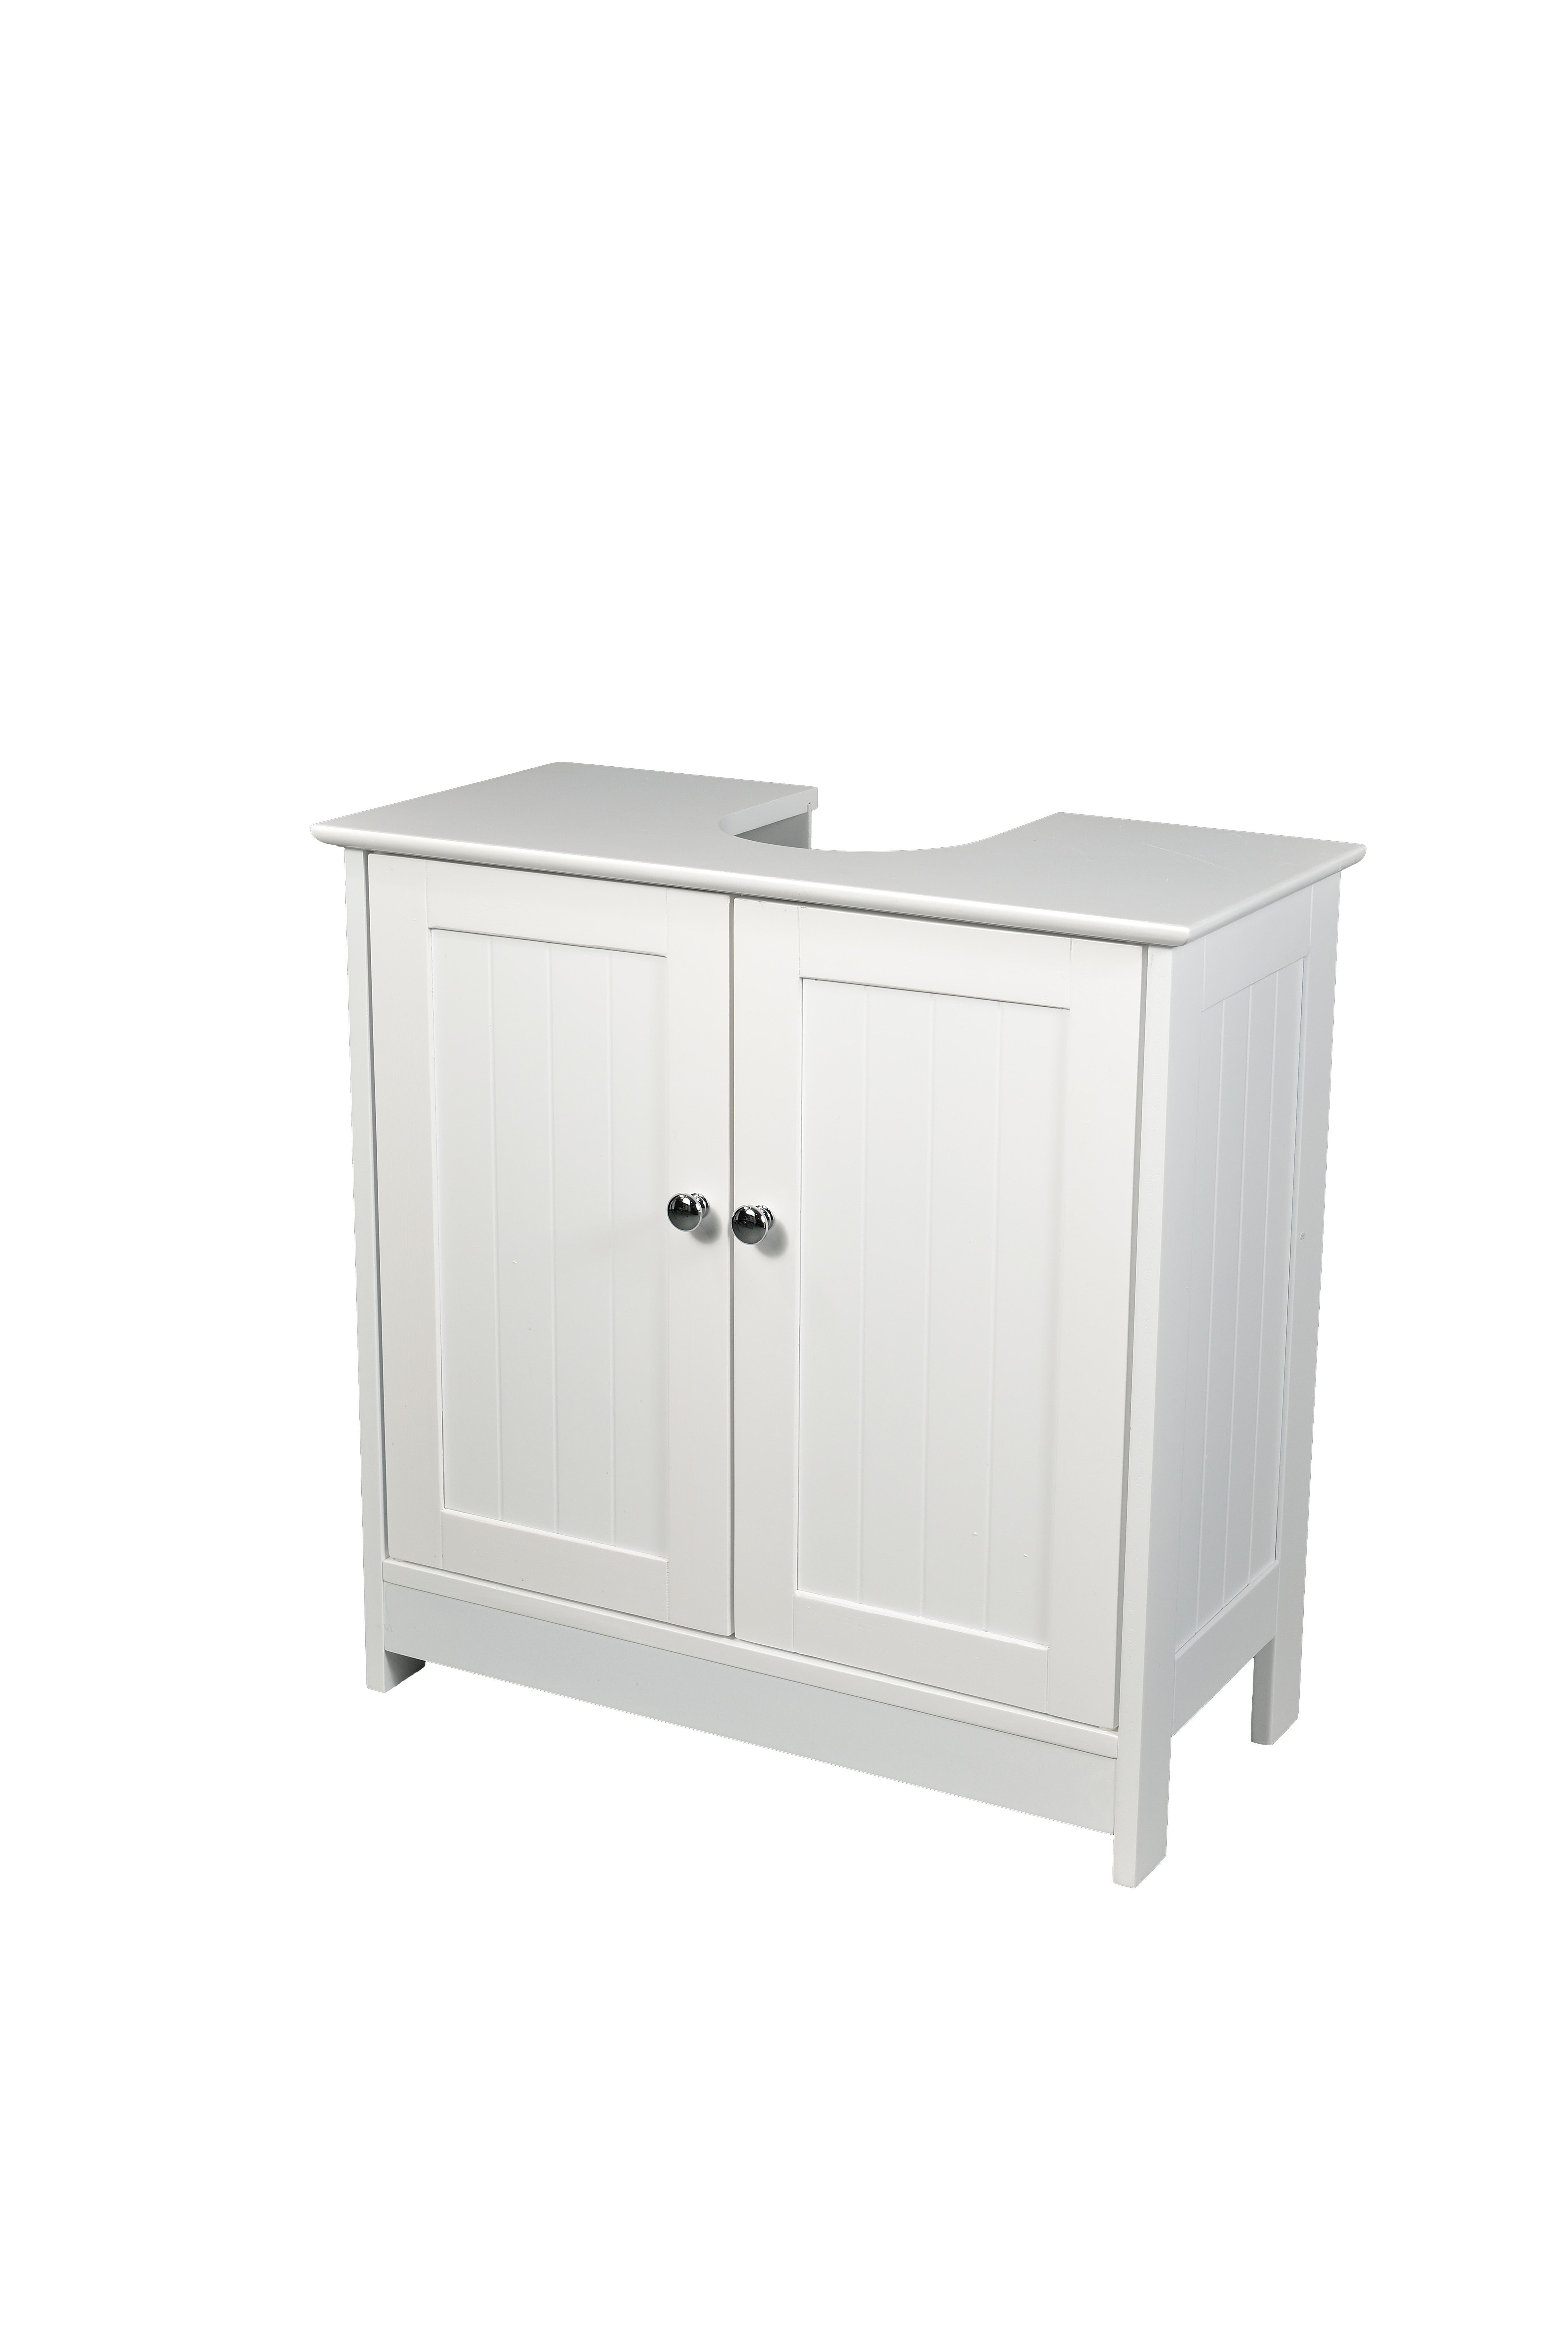 ALASKA 2 DOOR VANITY UNIT FOR SINK.